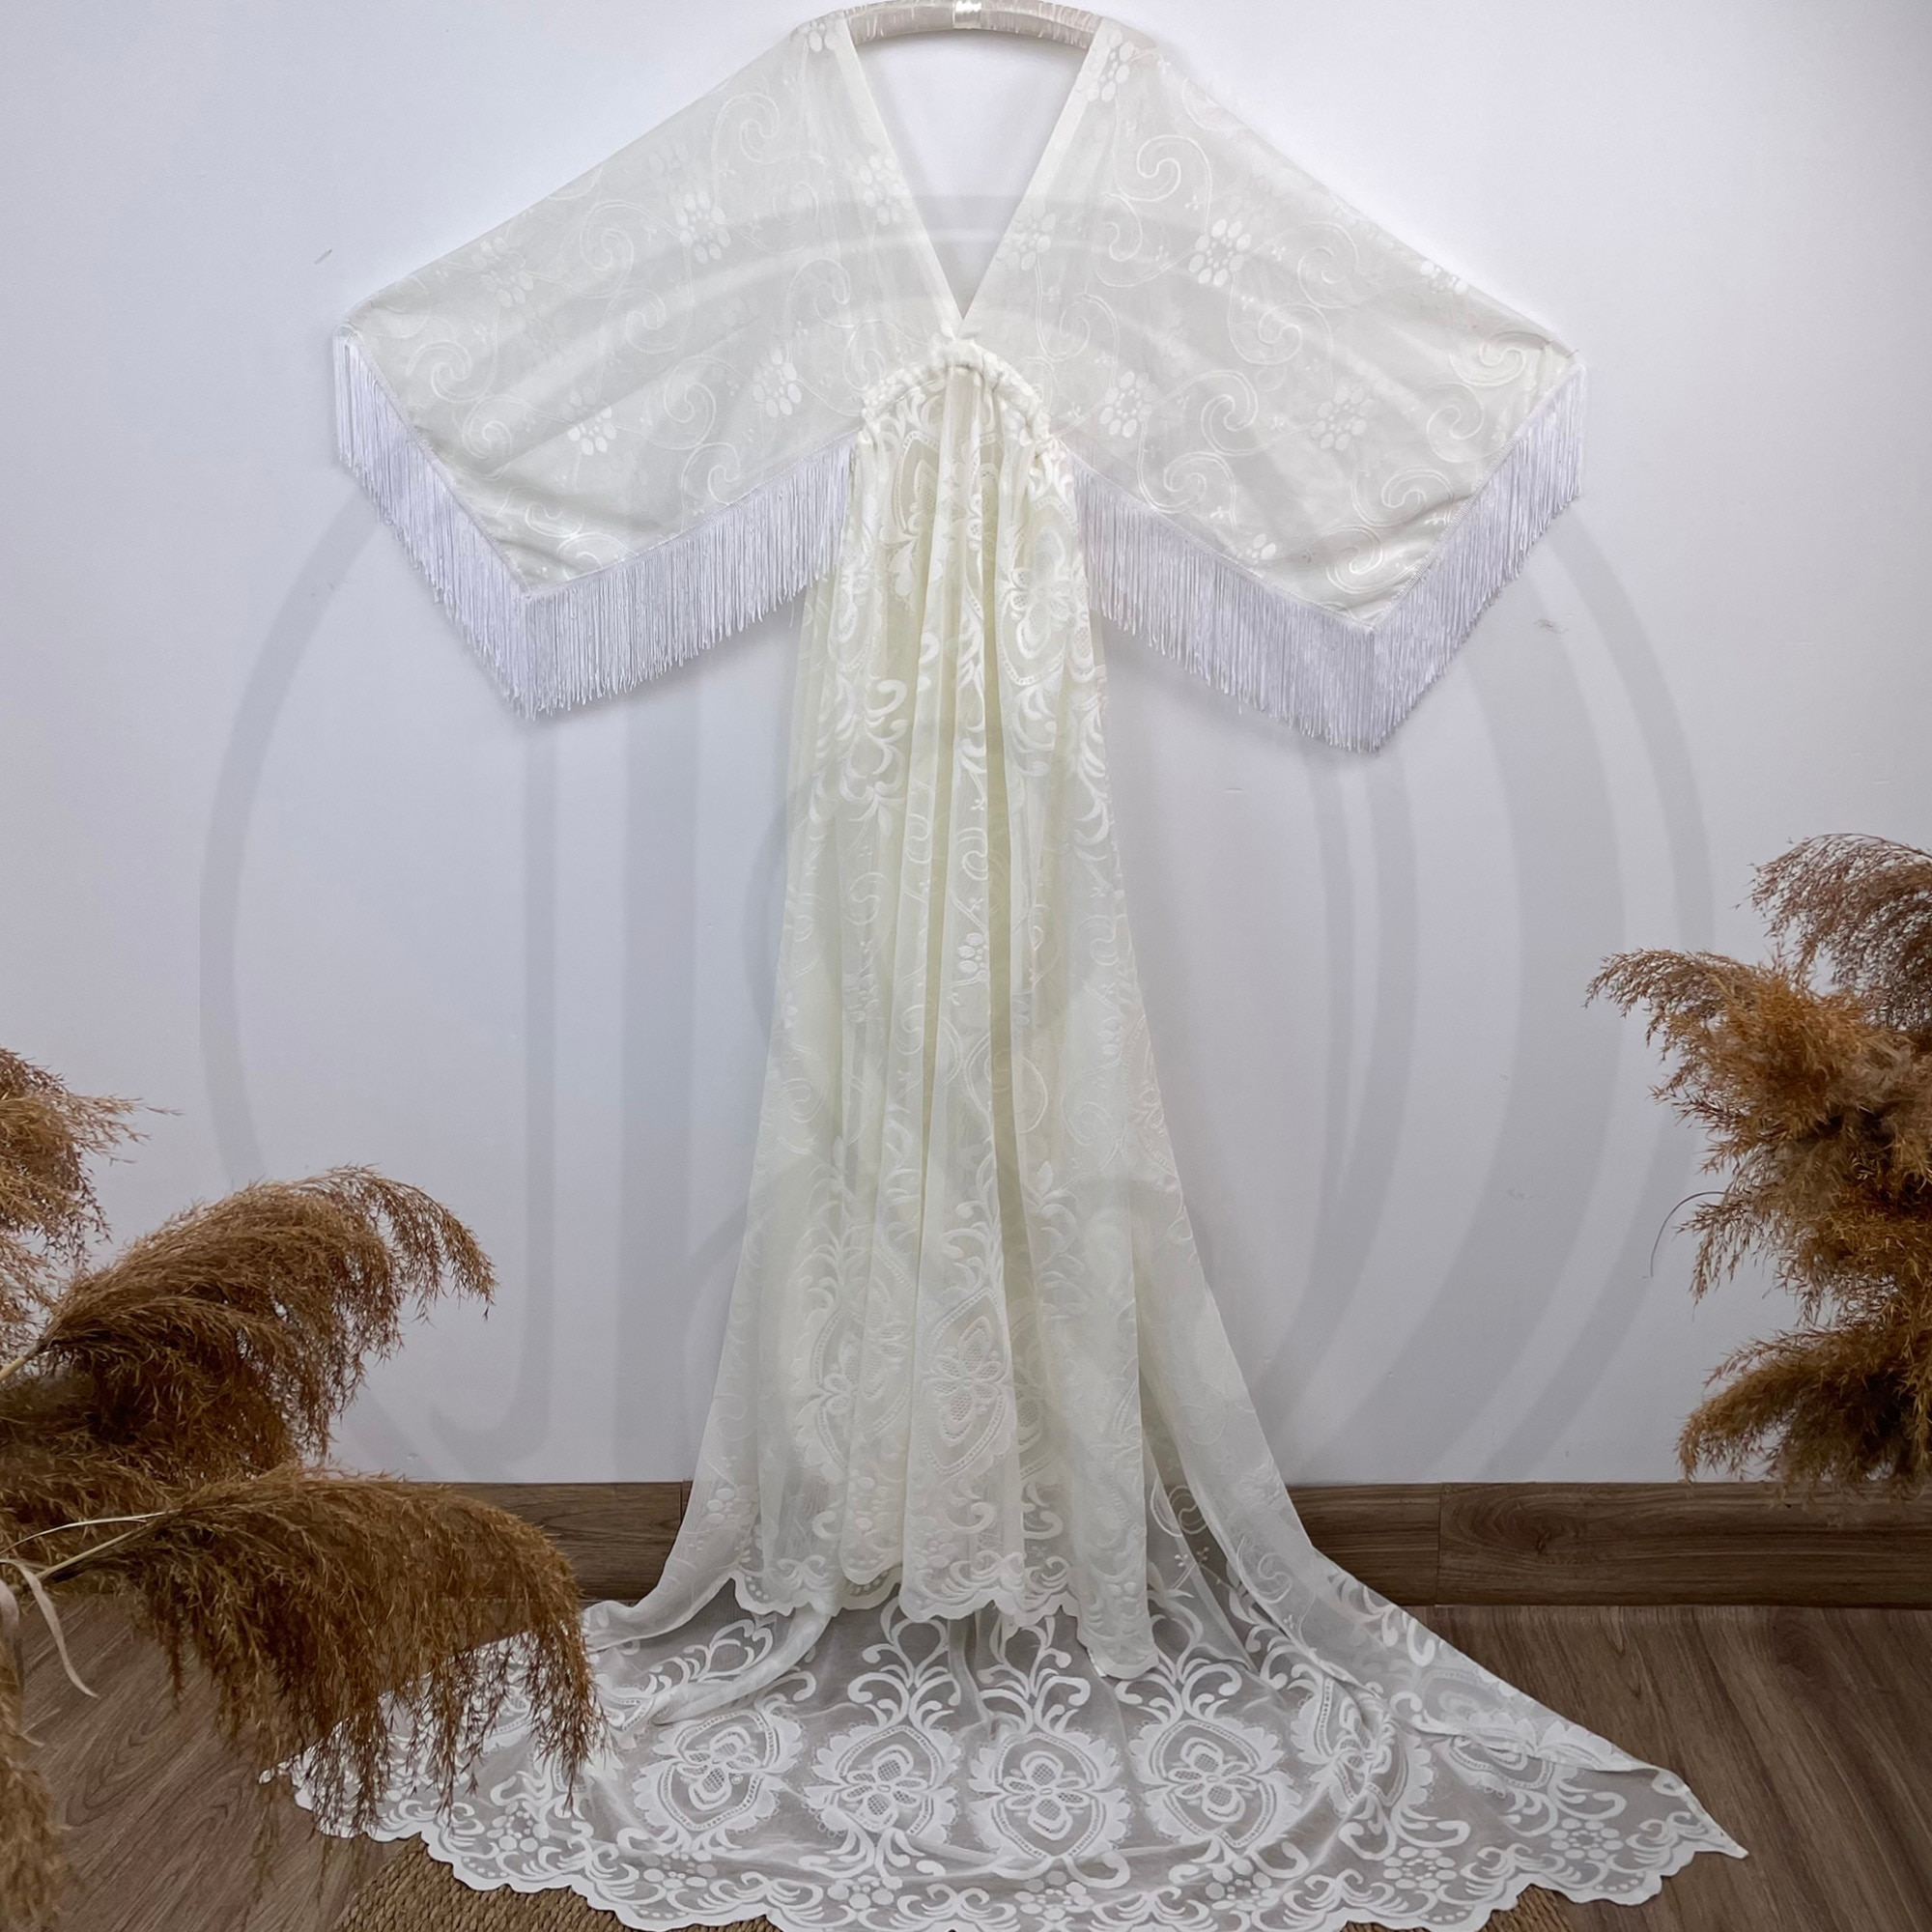 Photo Shoot Couture Boho Robe Cream Maternity Dress Floral Pregnant Gown for Woman Photography Costume Baby Shower Clothing